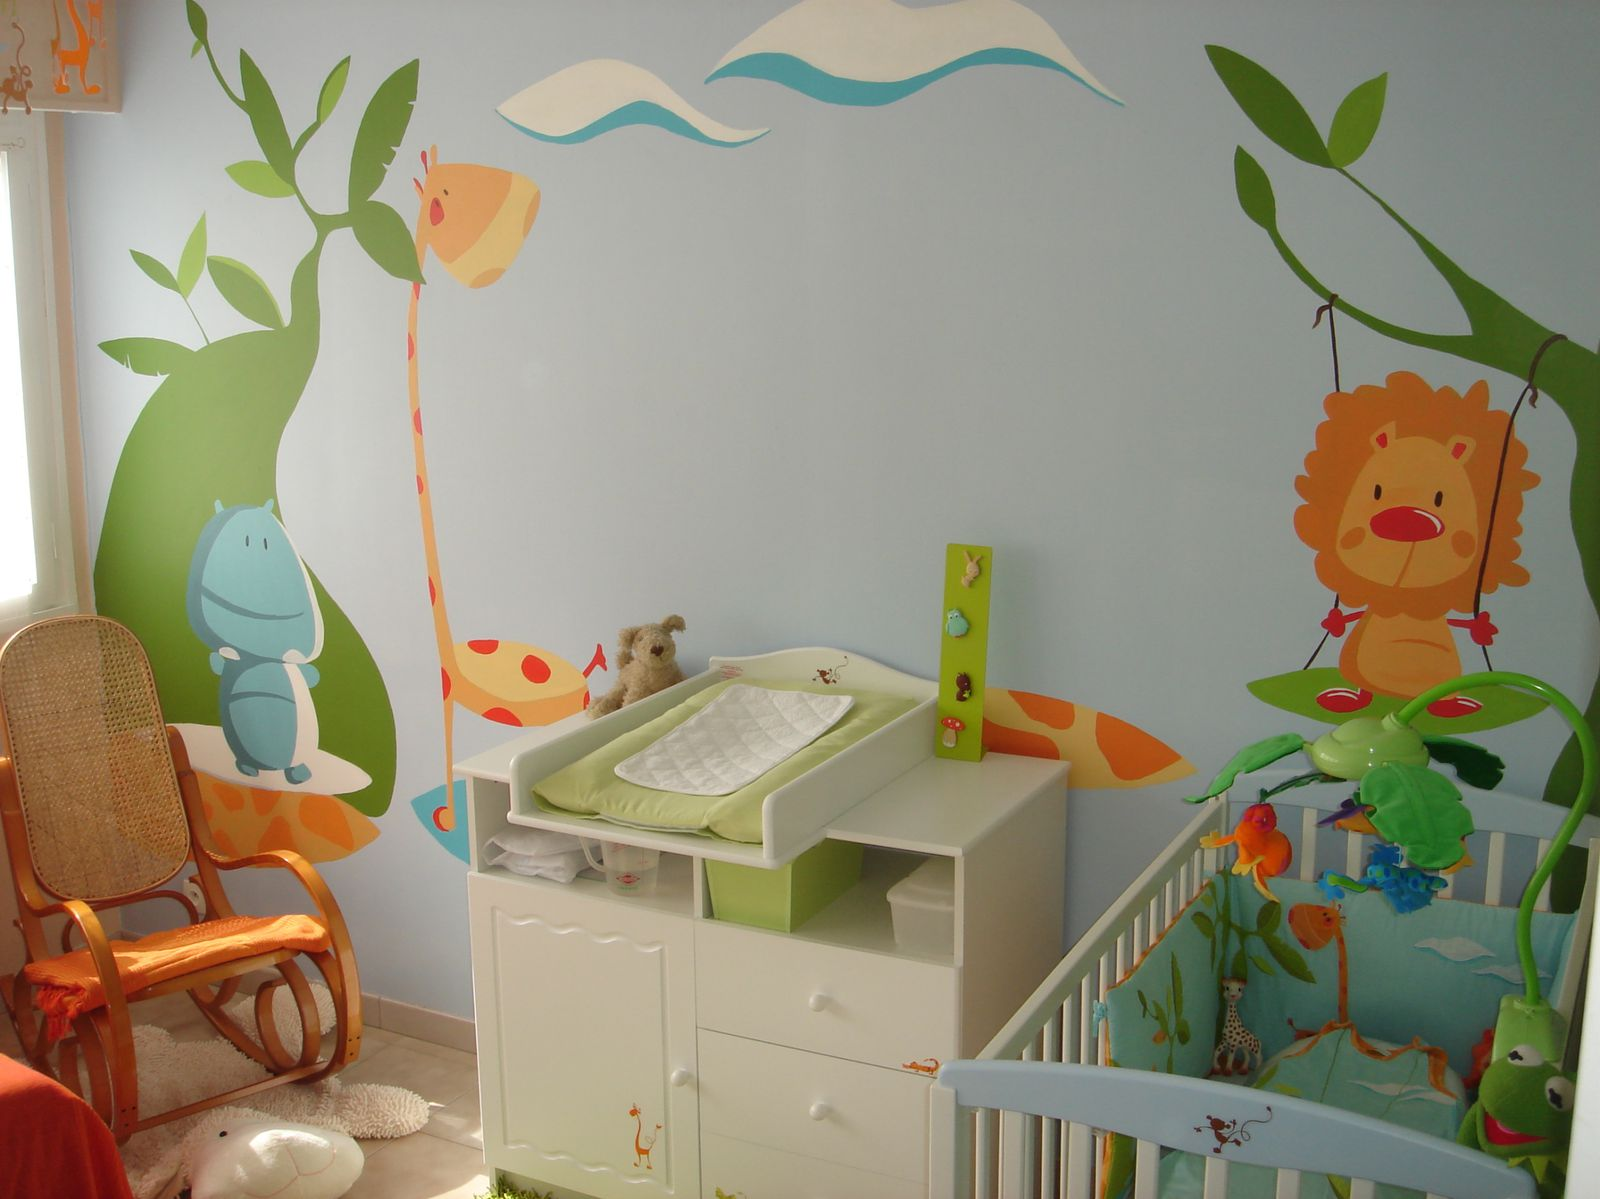 Photos bild galeria decoration murale chambre bebe - Decoration murale chambre enfant ...